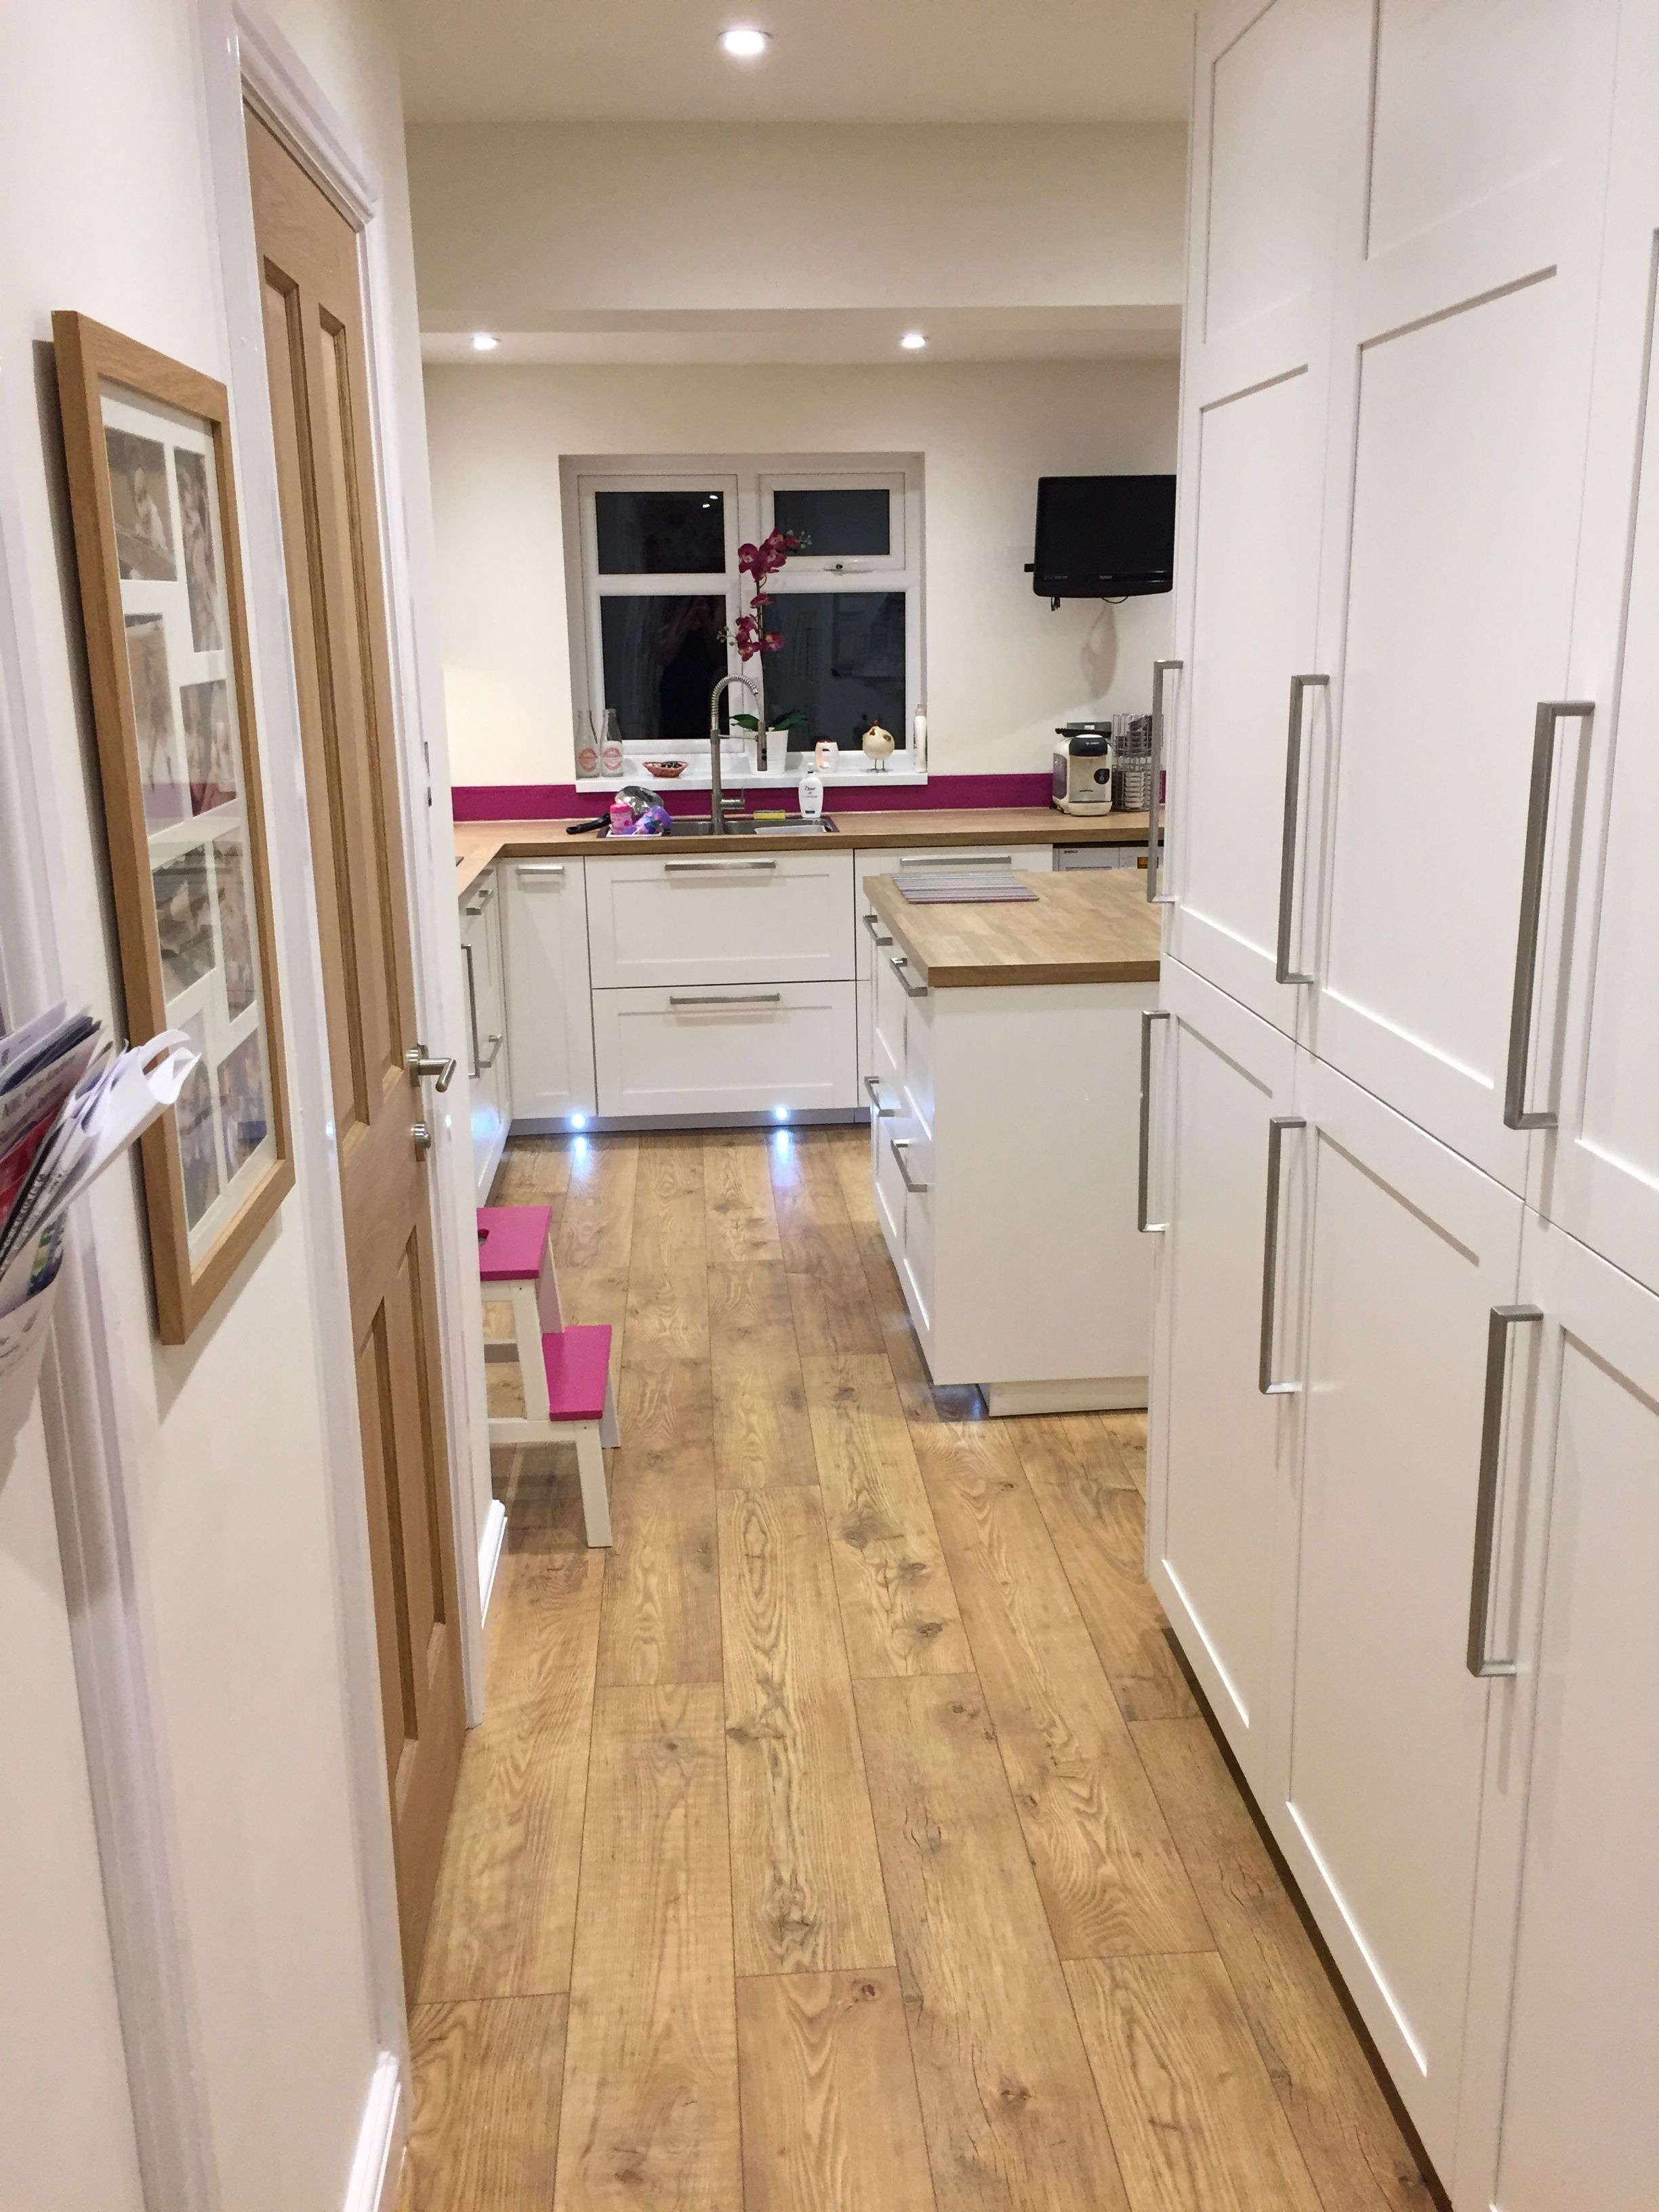 Best Ikea Savedal Kitchen With Images Kitchen Cabinets 640 x 480